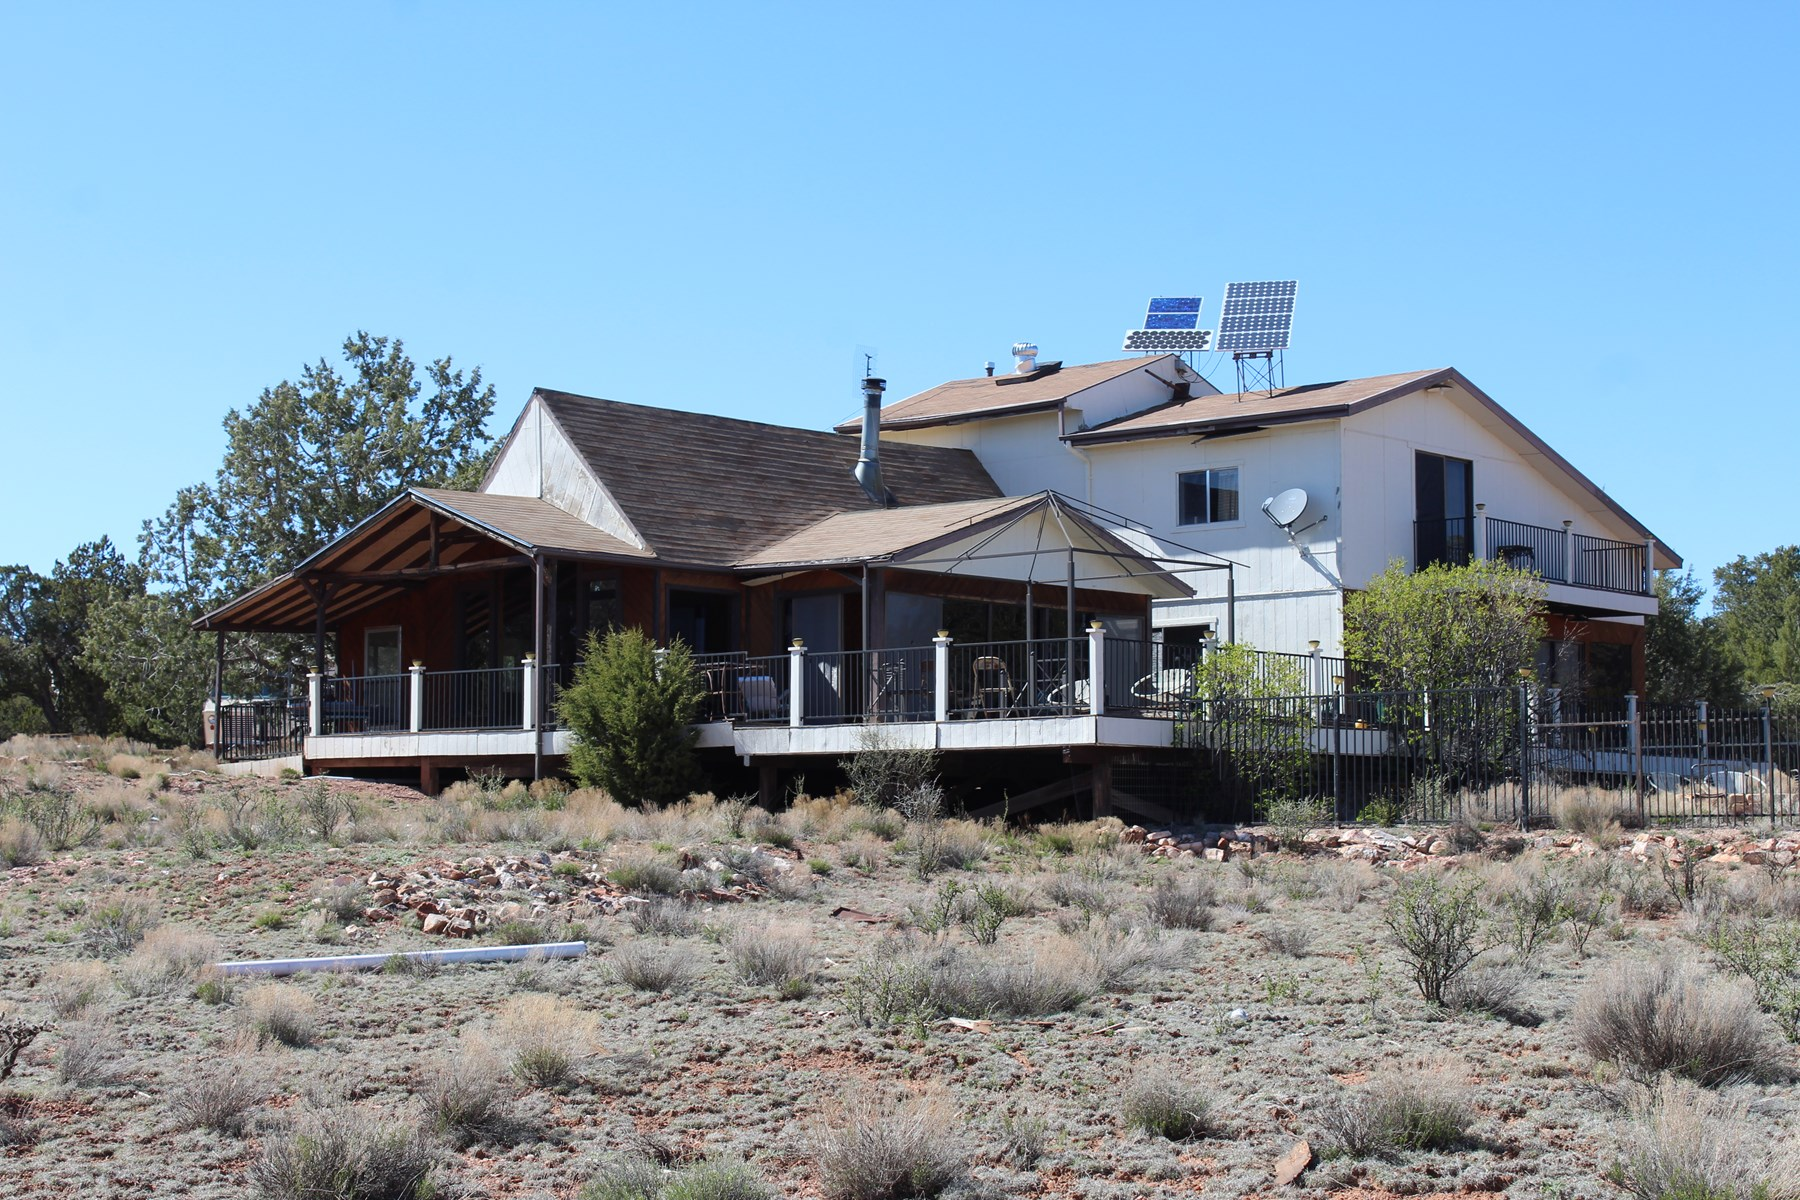 Rural Off Grid Home on 40 Acres for Sale Near Route 66 AZ